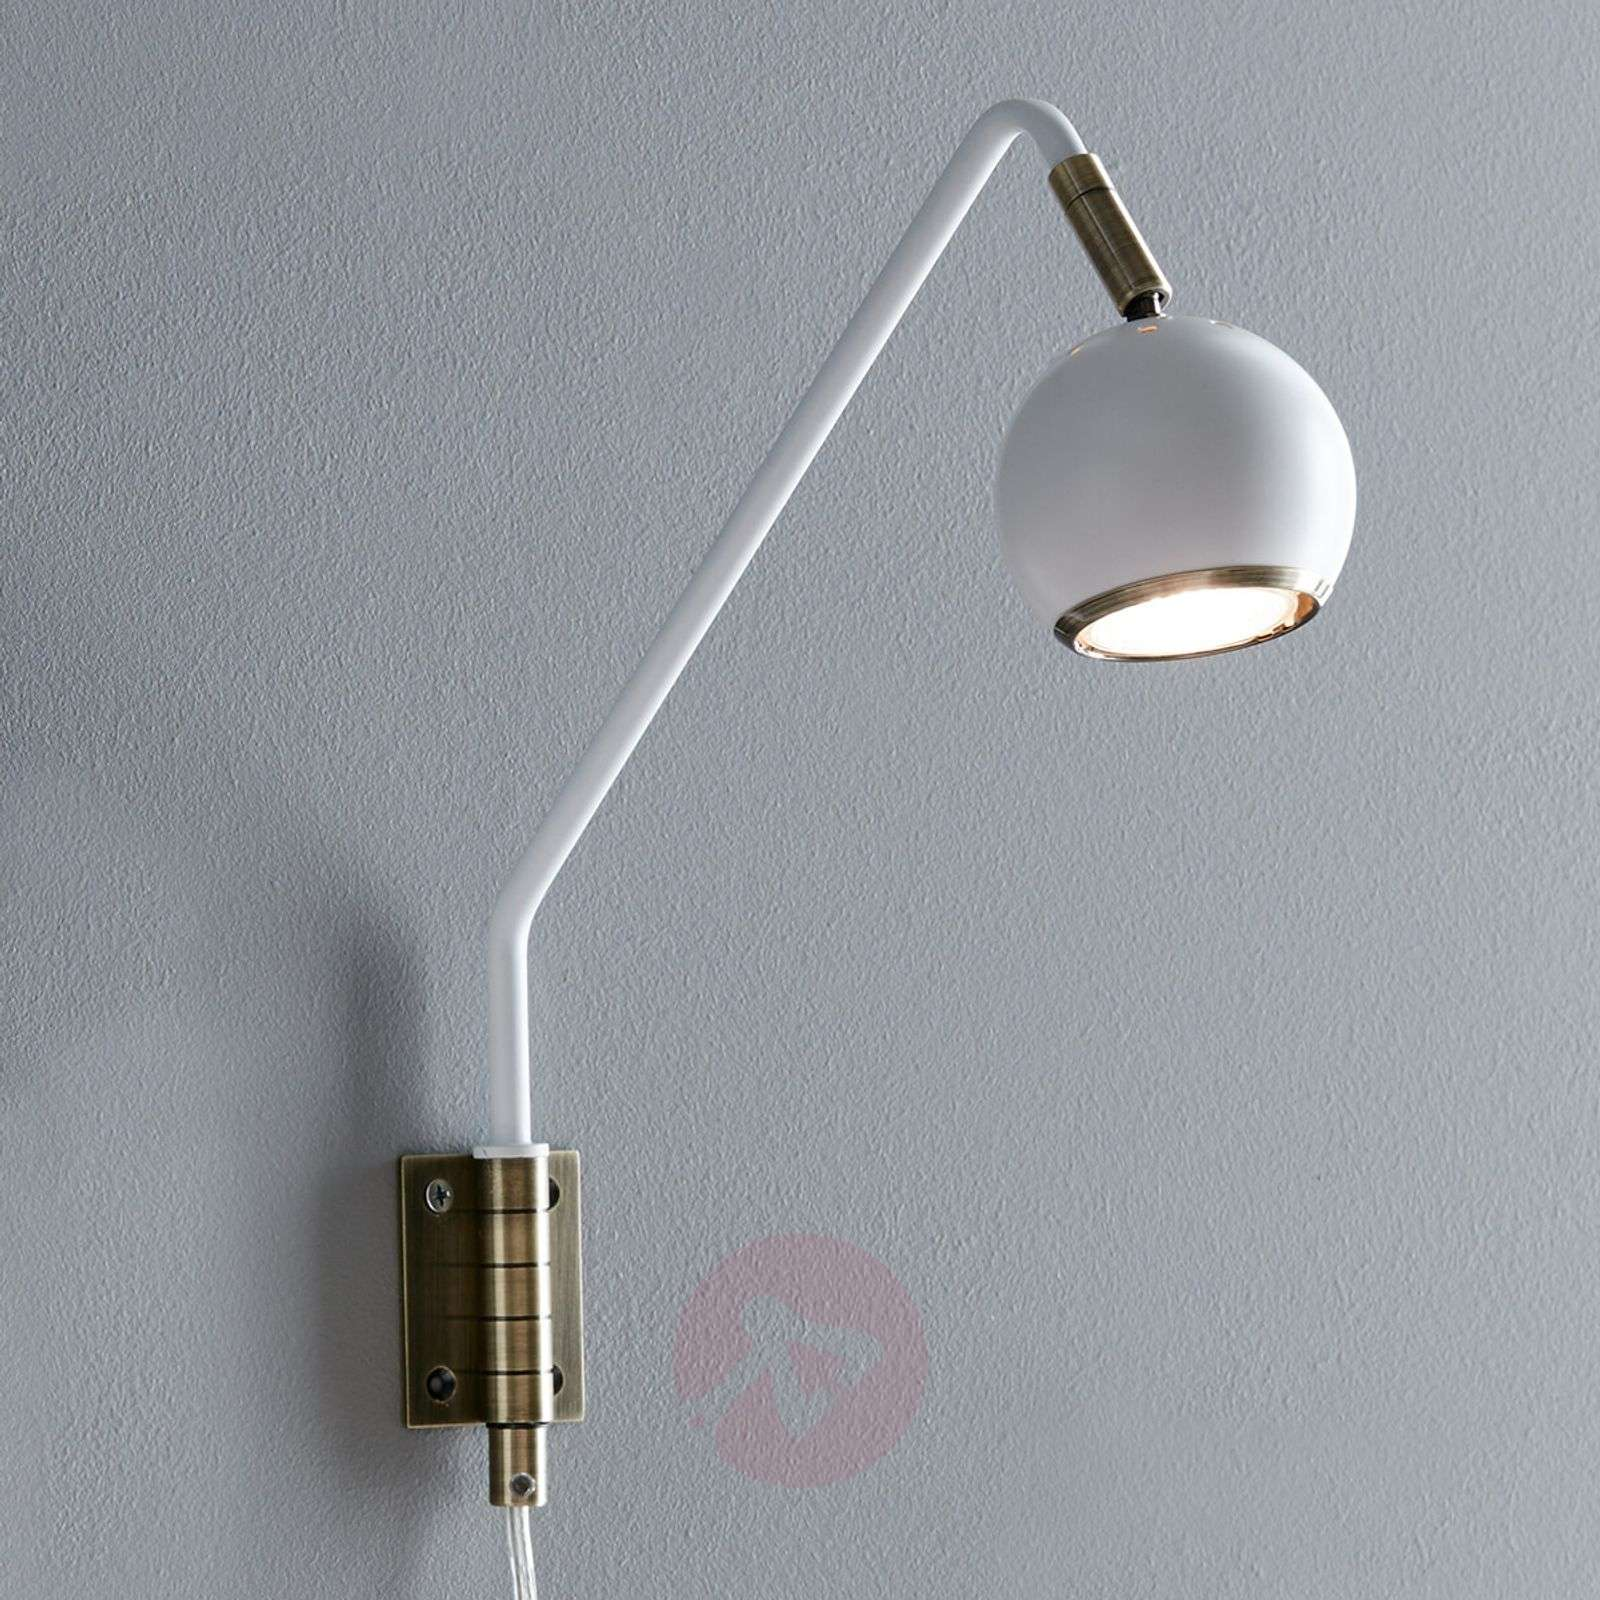 Pivotable Coco wall light, white-6506152-01